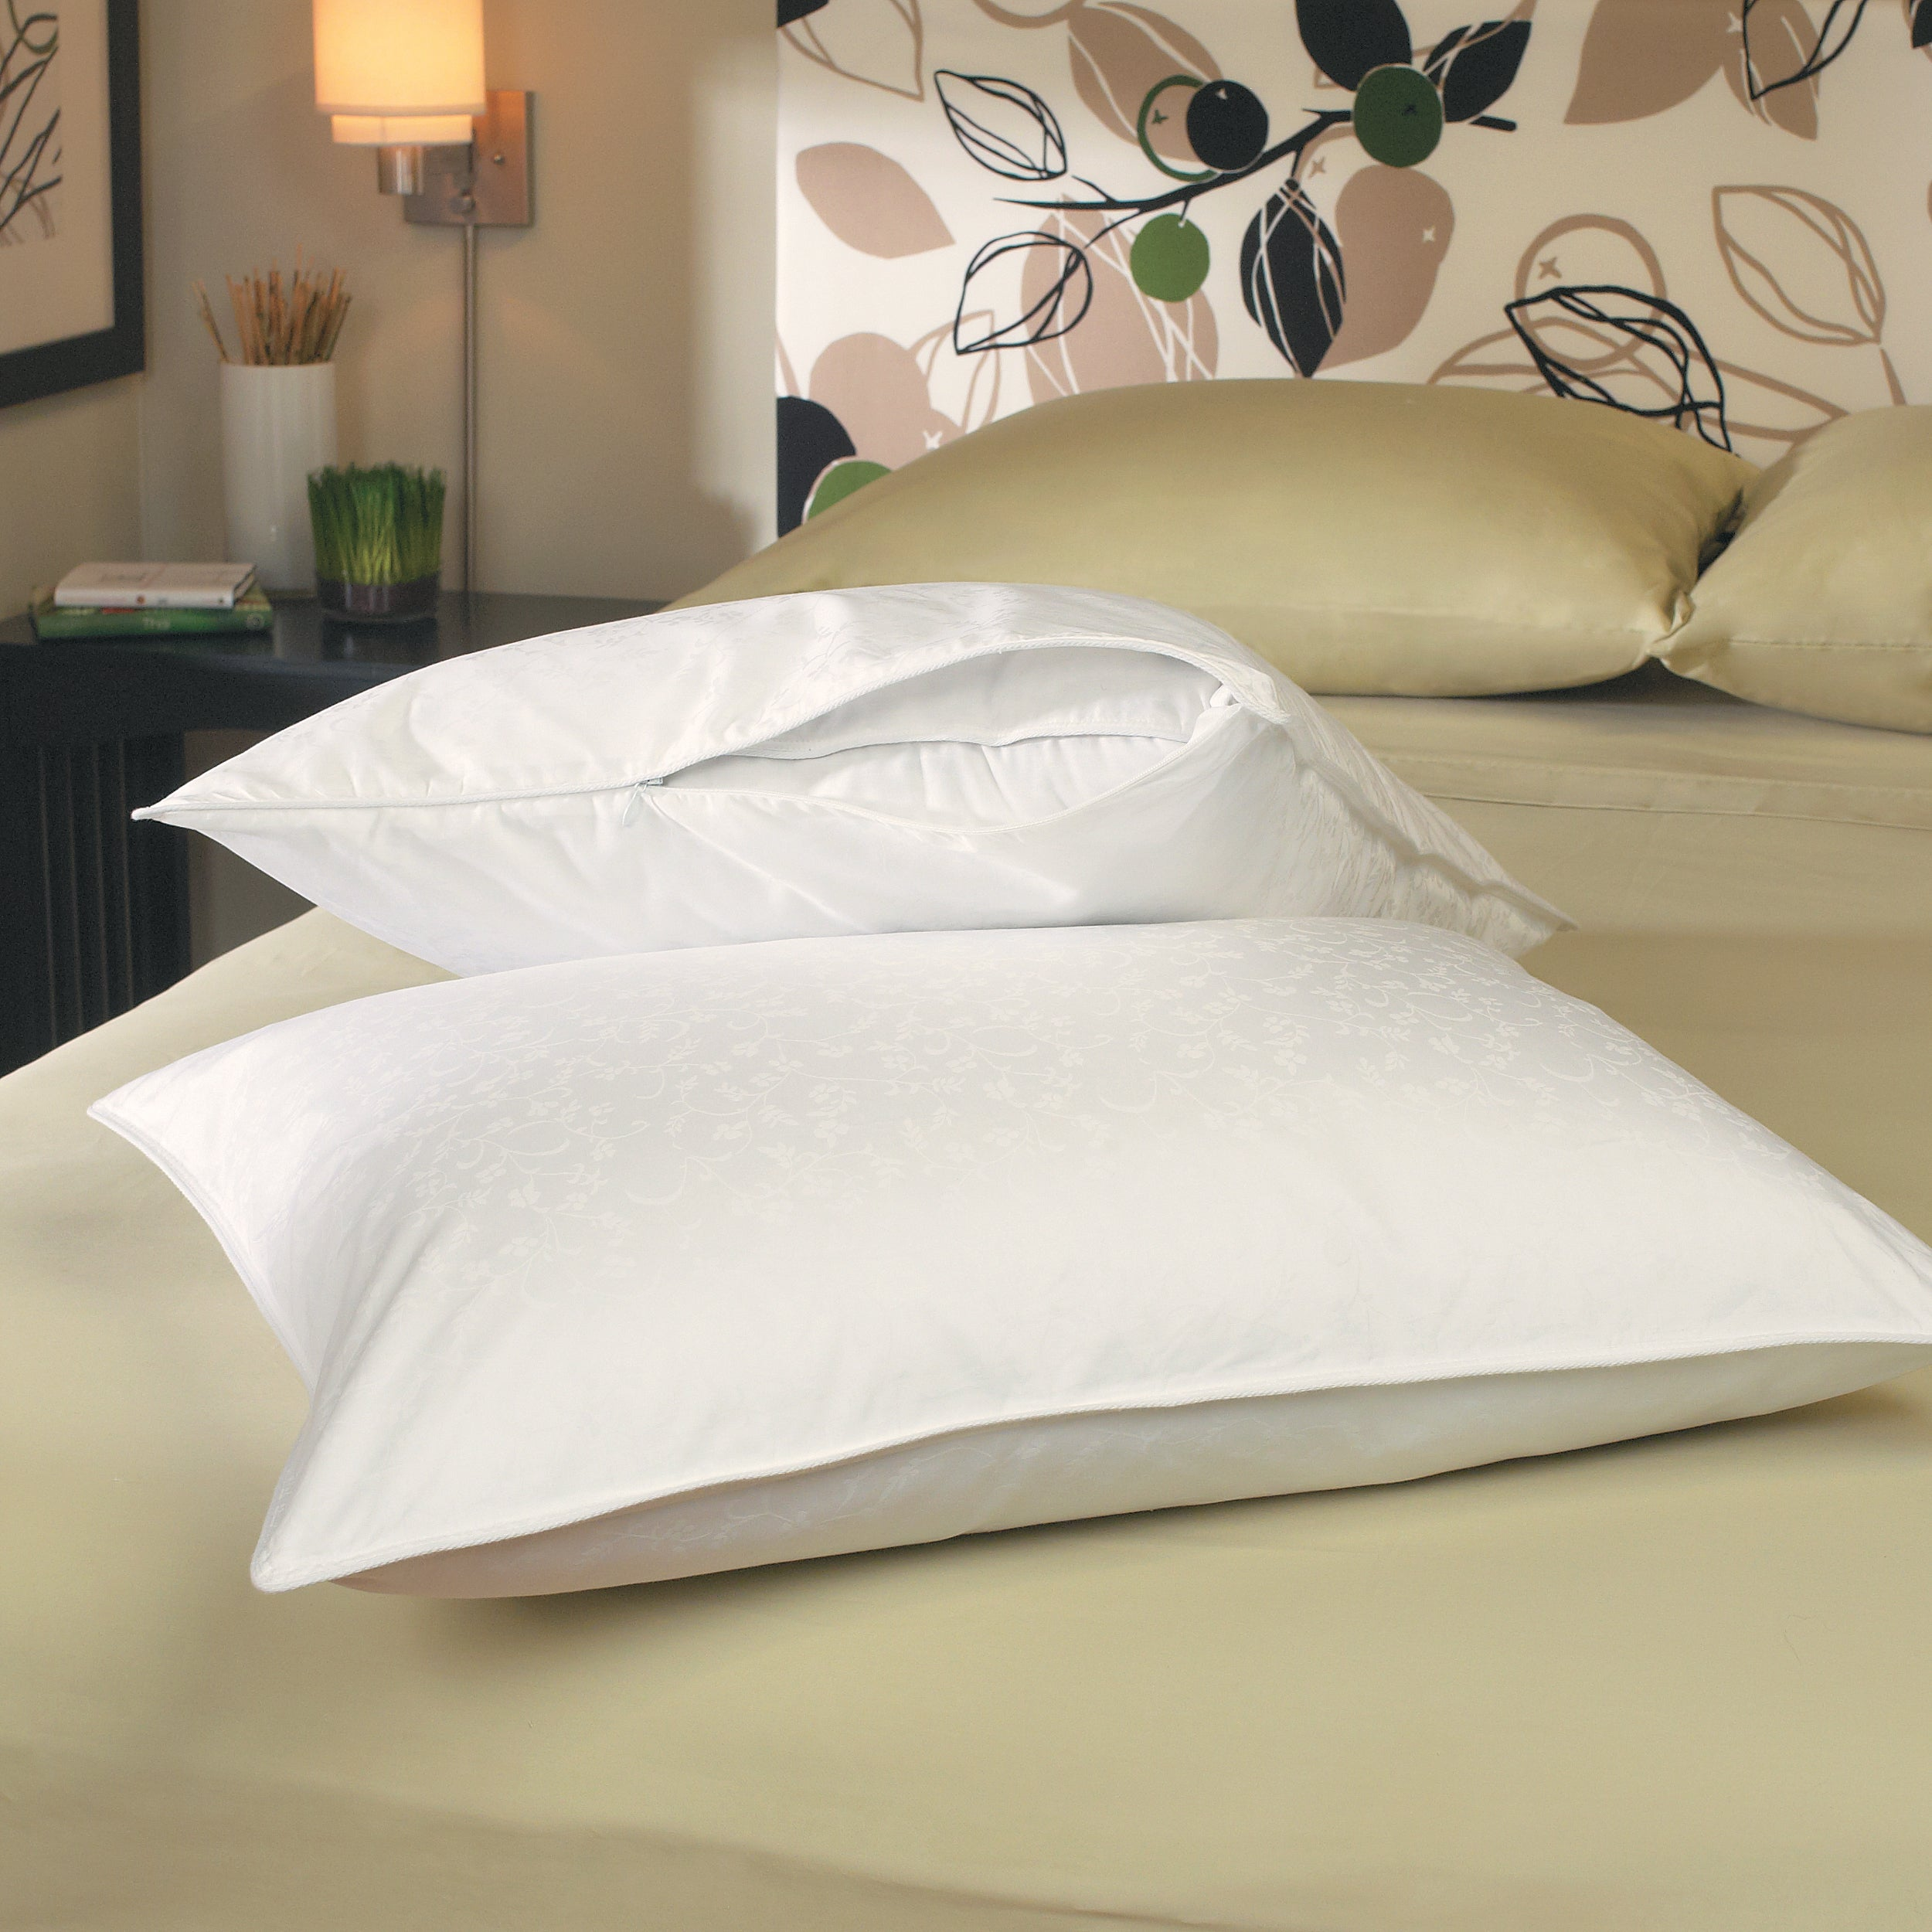 Jacquard 330 Thread Count Zip Standard/Queen/King- Size Pillow Protectors (Set of 2)